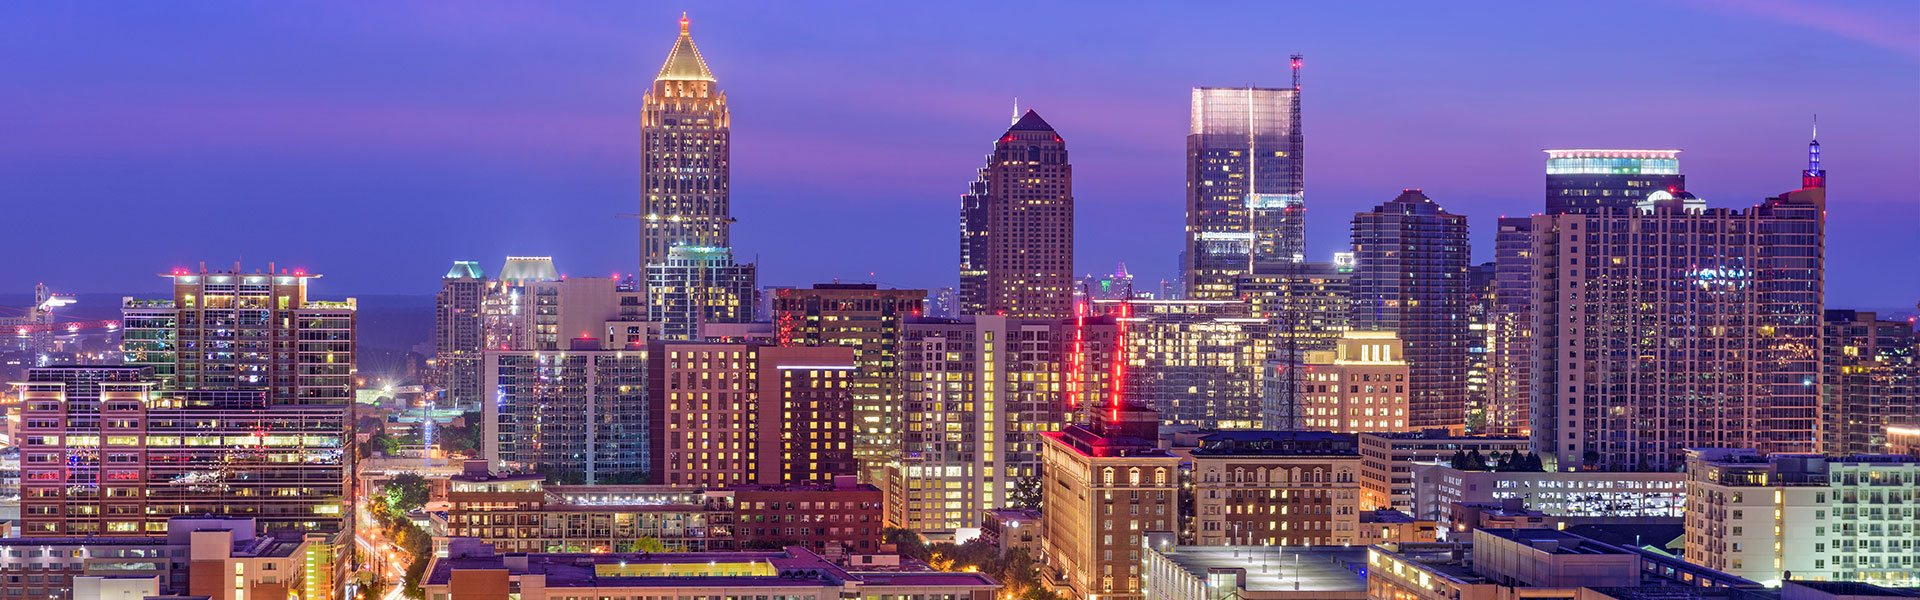 Atlanta skyline at dusk.